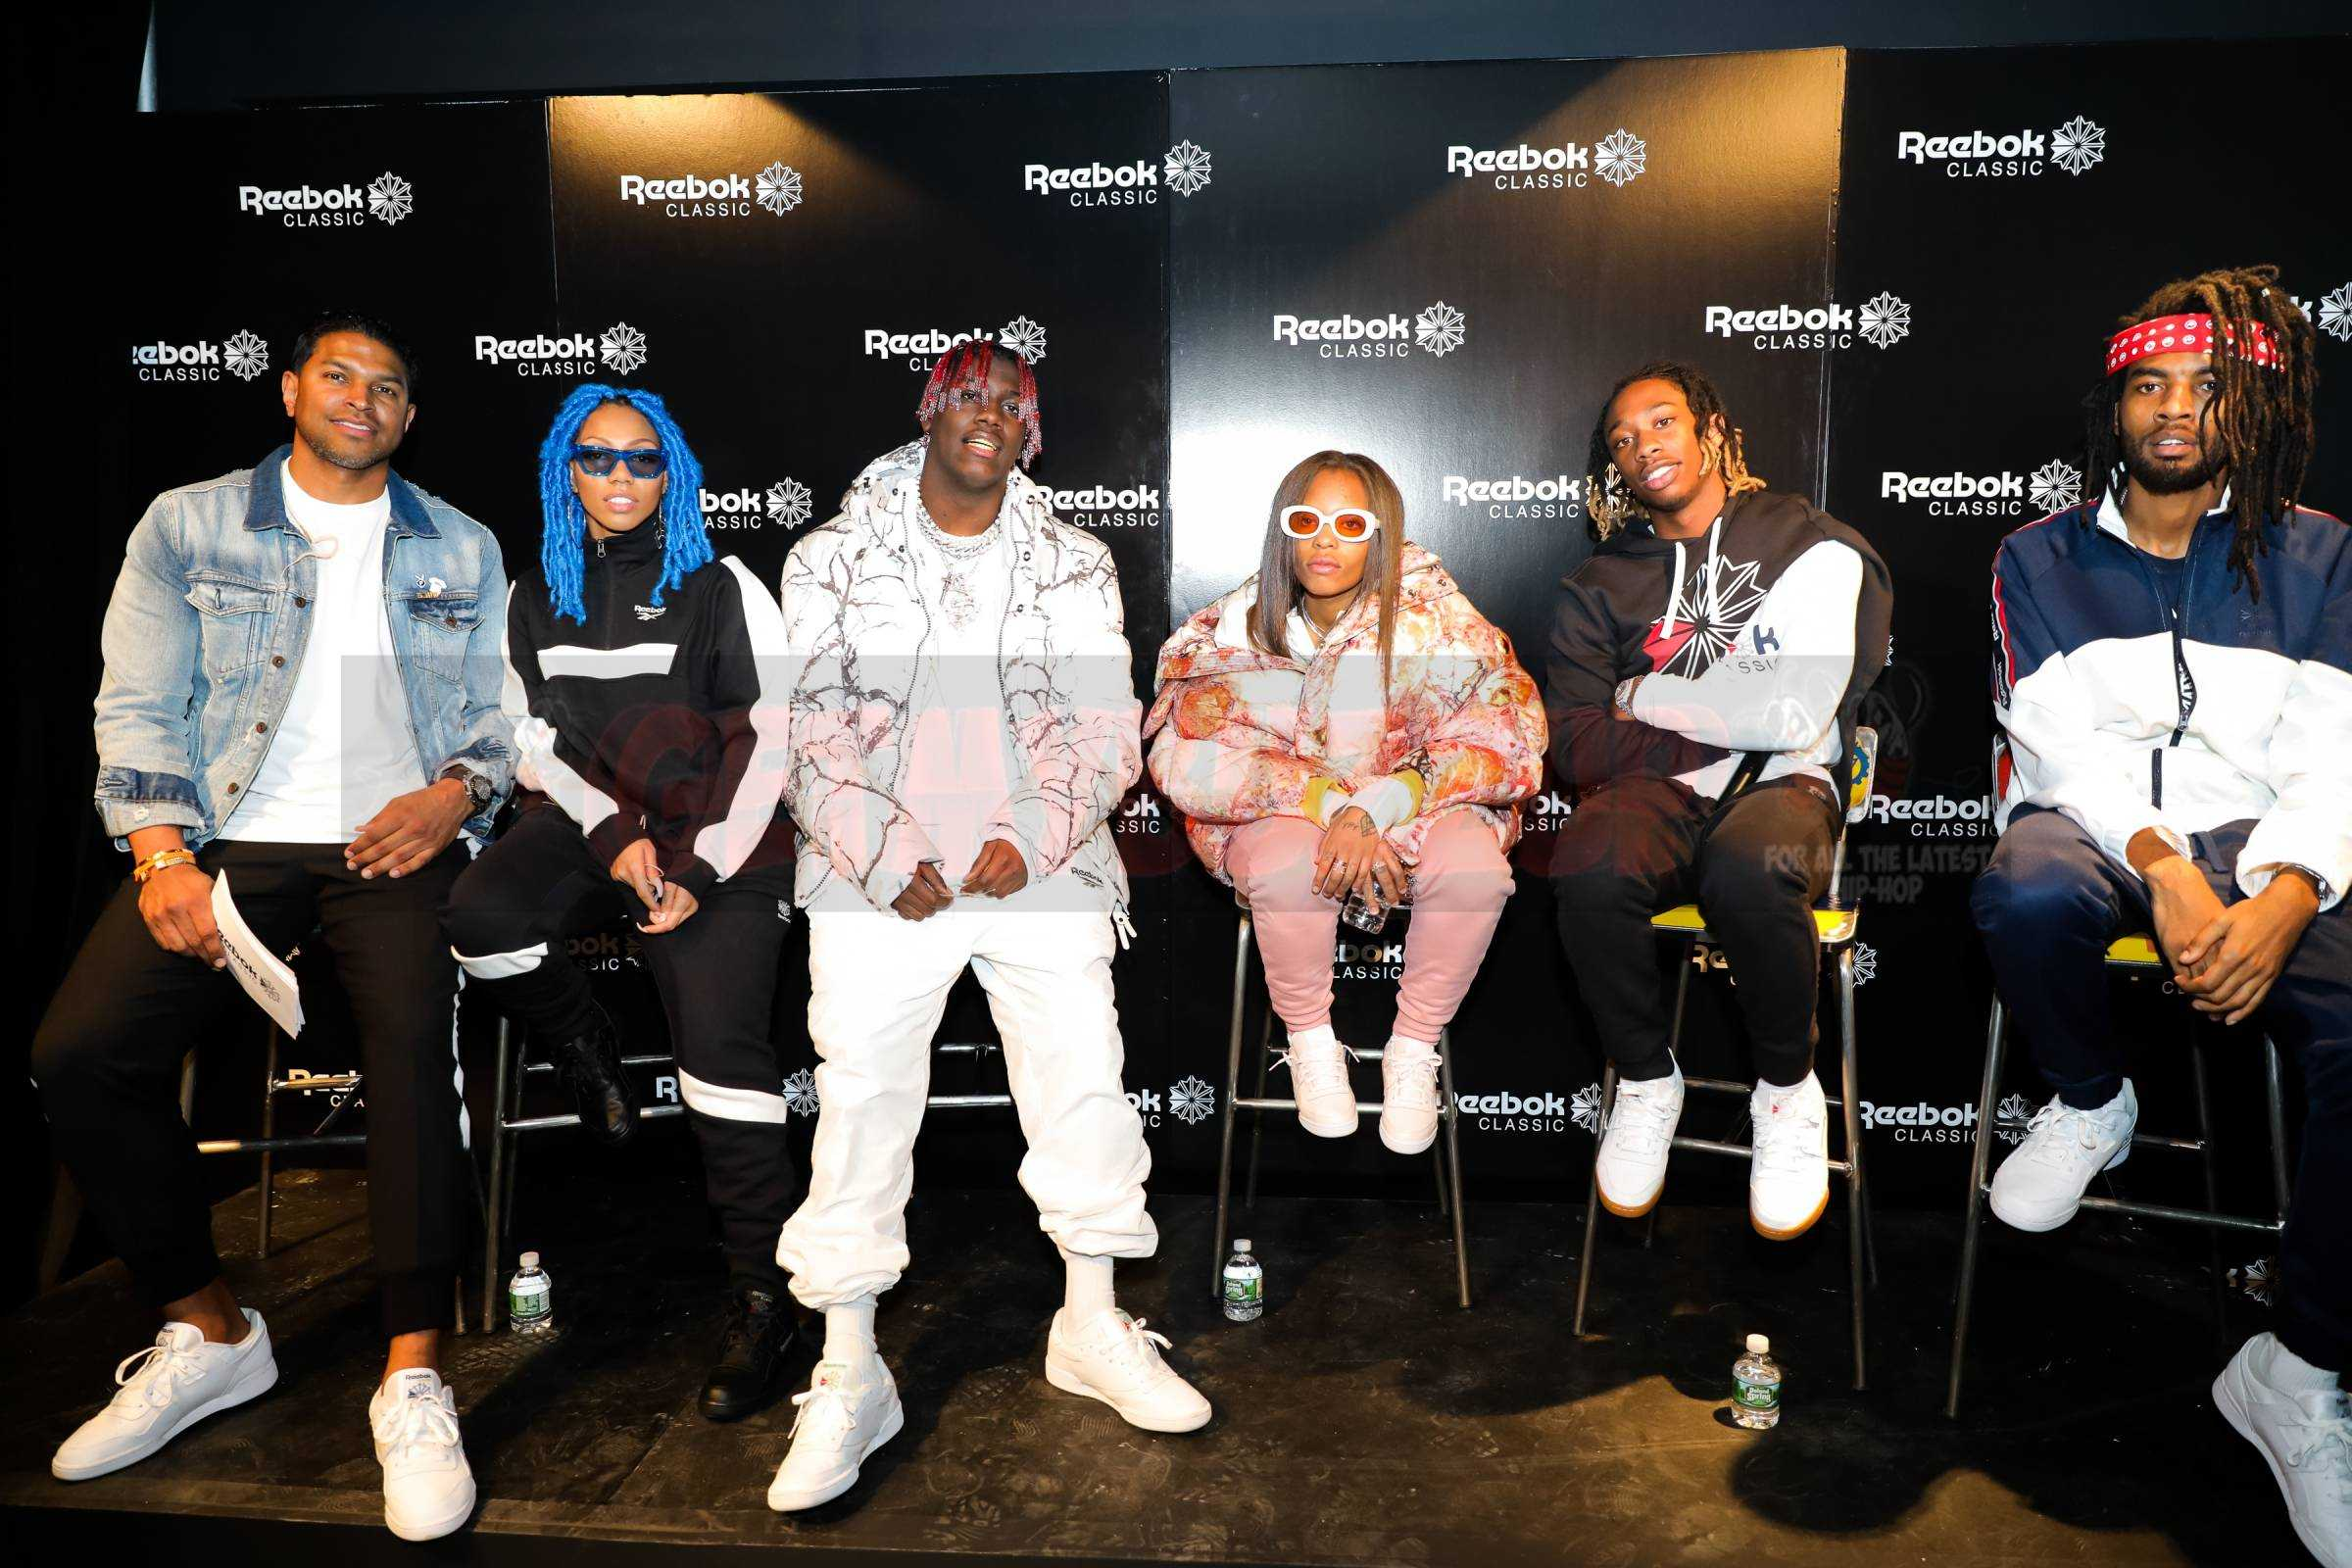 REEBOK CLASSIC UNITES TWO STYLE ICONS – THE WORKOUT PLUS SNEAKER AND LIL YACHTY, WITH AN EPIC EXPERIENCE IN NYC